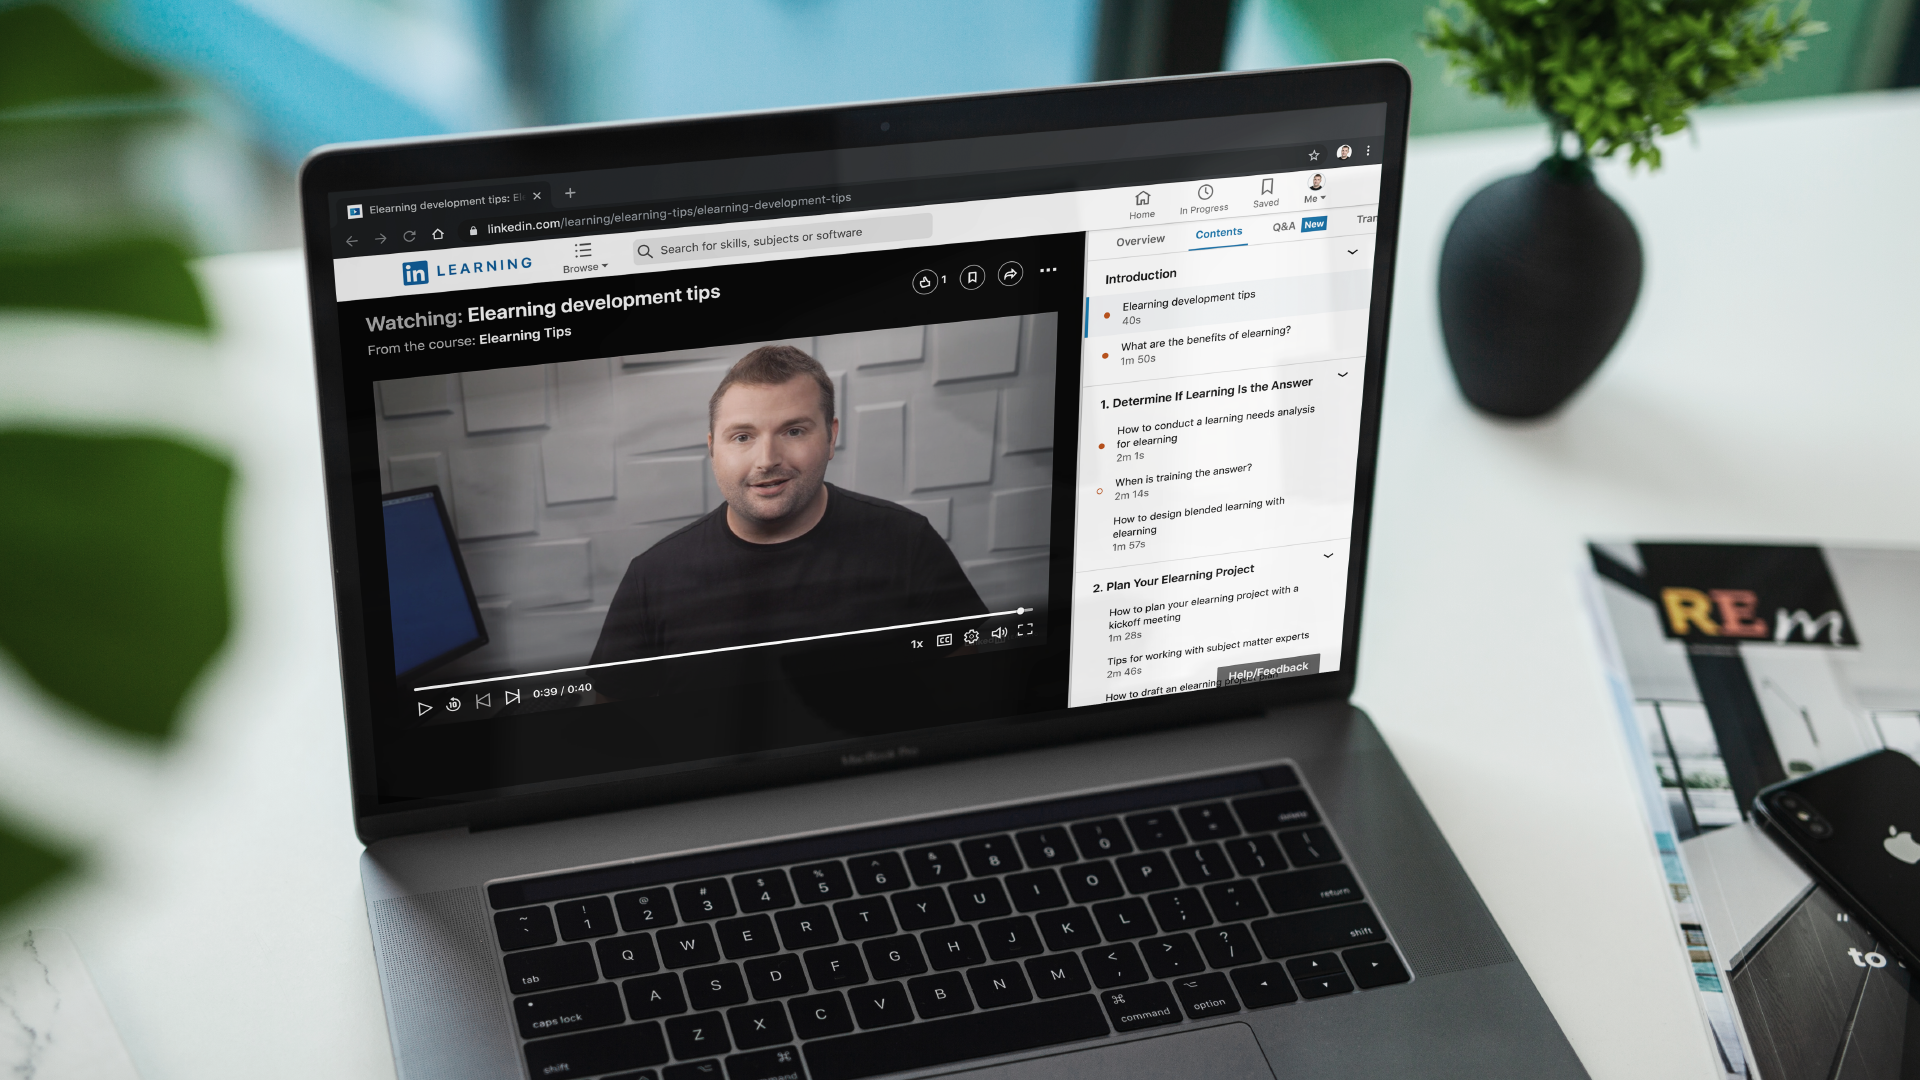 Check out my latest LinkedIn Learning Course: eLearning Tips by Tim Slade | eLearning Blog